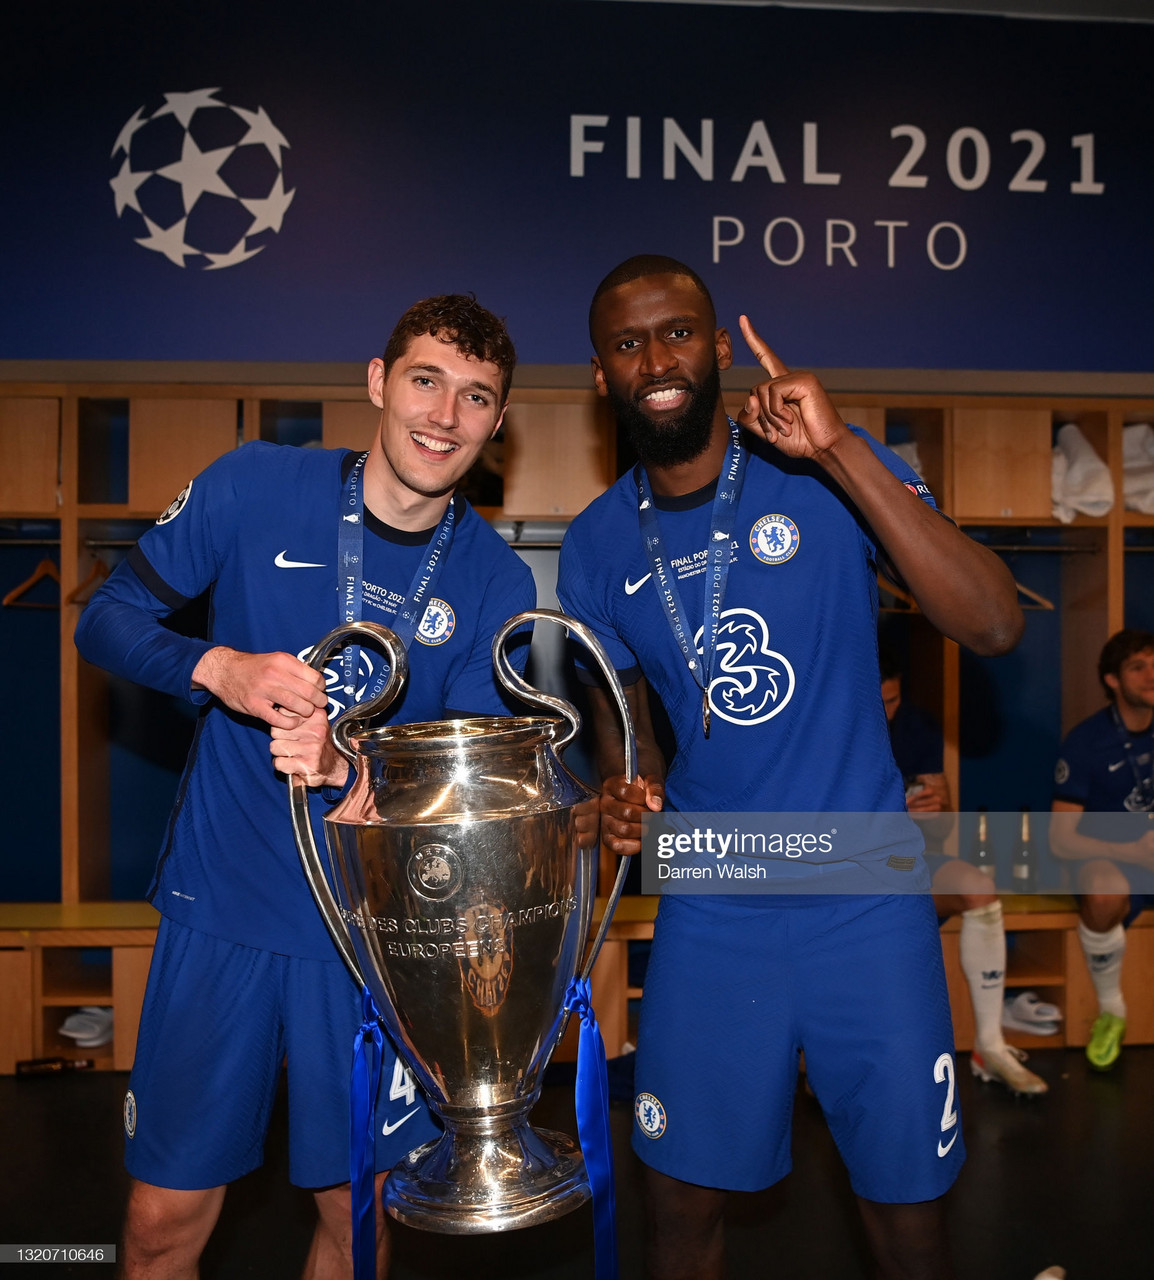 Chelsea 'offer new contracts' to Antonio Rudiger and Andreas Christensen